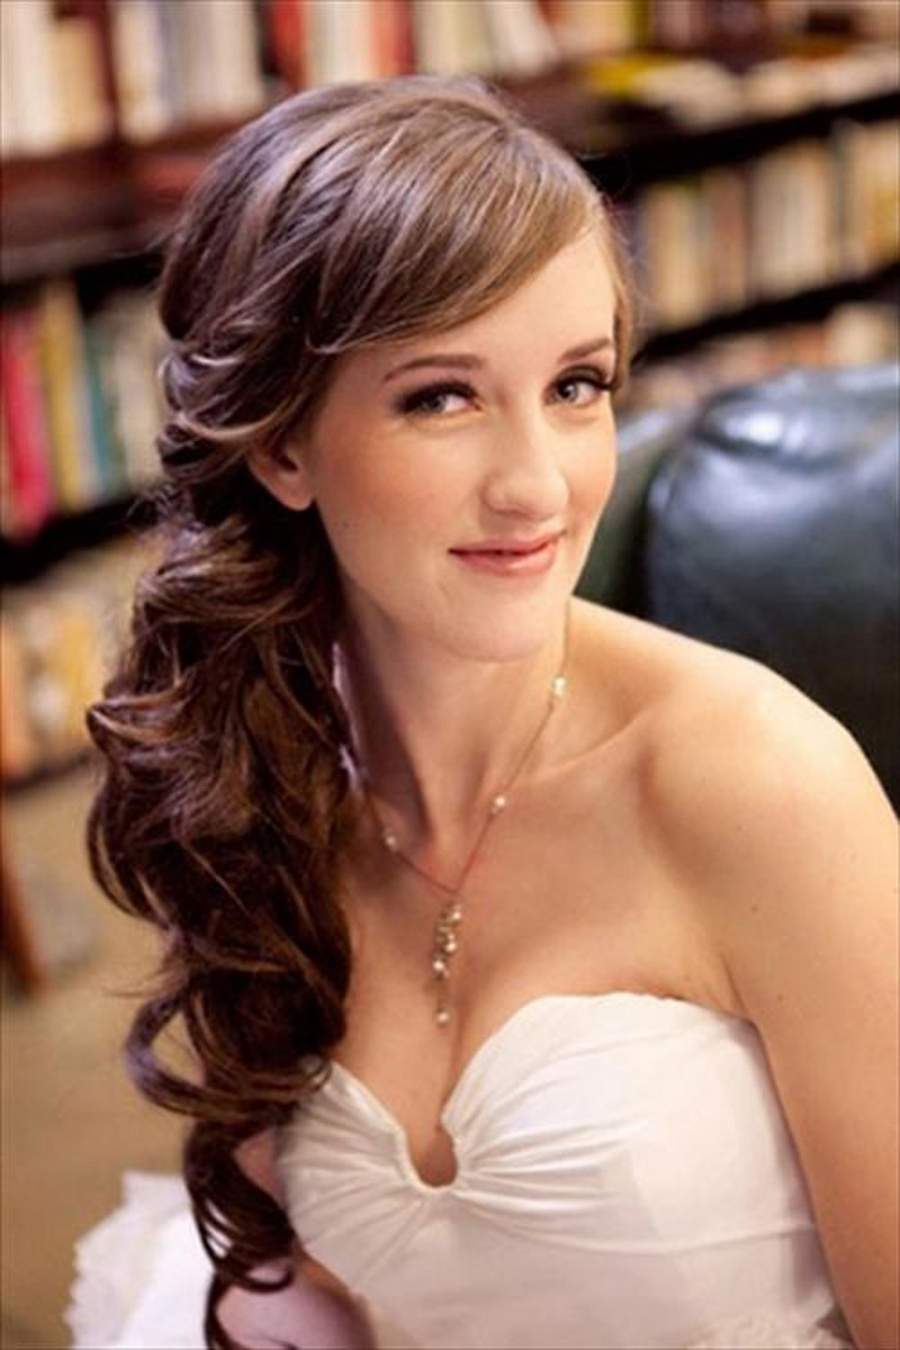 Side Ponytail Wedding Guest Hairstyles For Long Hair With Bangs Intended For Long Hair Side Ponytail Updo Hairstyles (View 10 of 15)